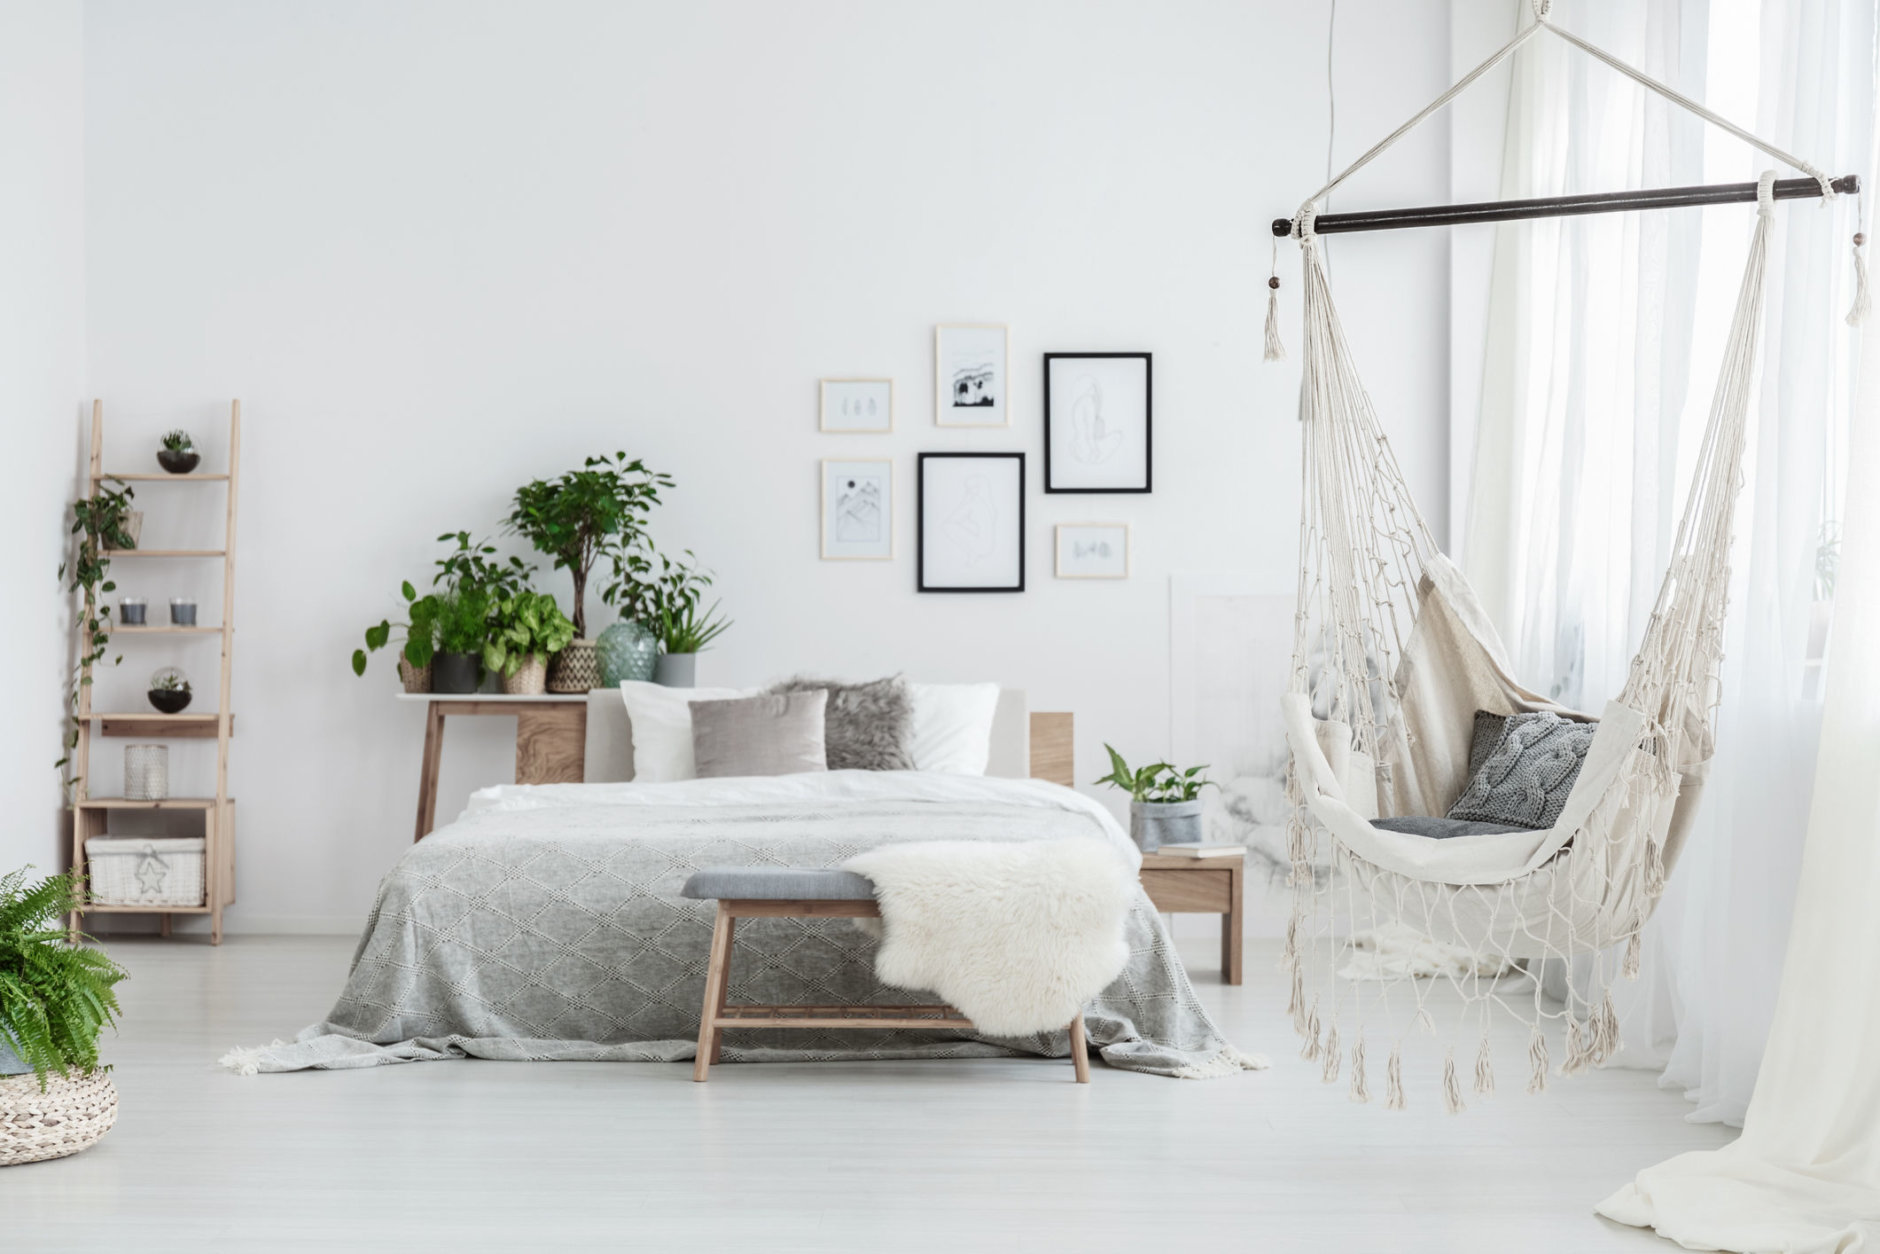 Brazilian chair with decorative cushion hanging in white bedroom with posters and green plants